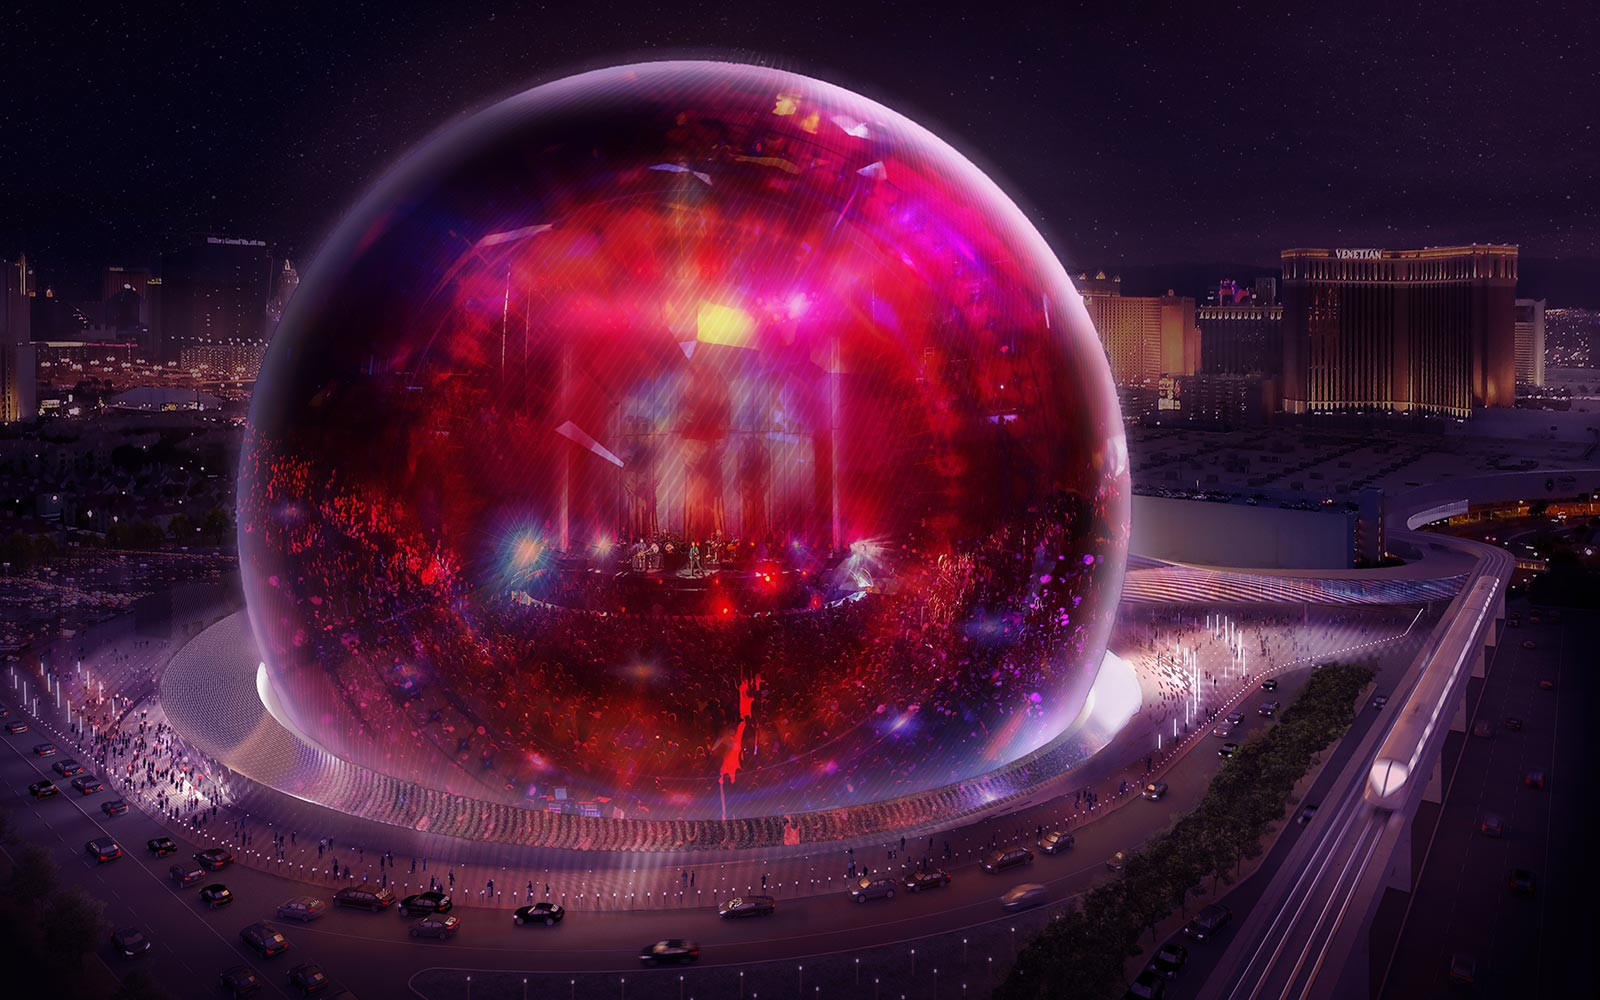 Madison Square Garden Entertainment Dome Sphere